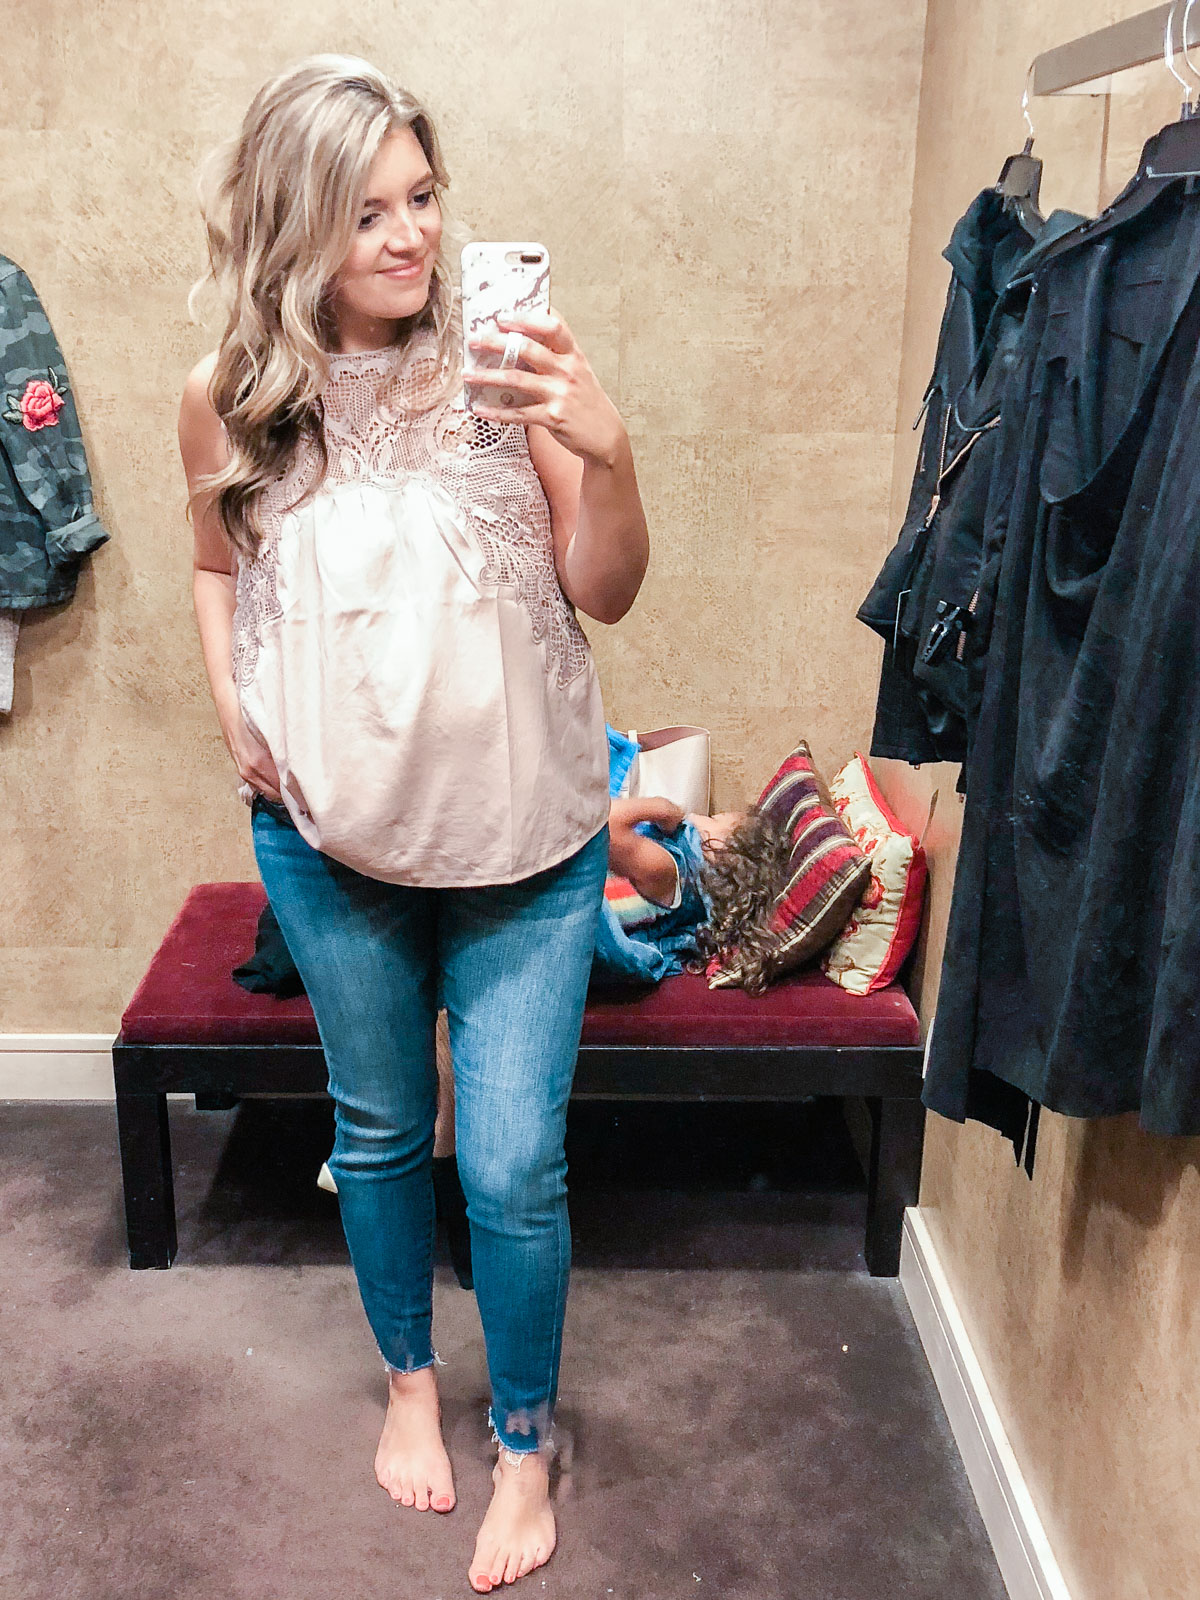 lace yoke top - Nordstrom anniversary sale 2018 try-on session: over 25 items reviewed for fit and size!   bylaurenm.com